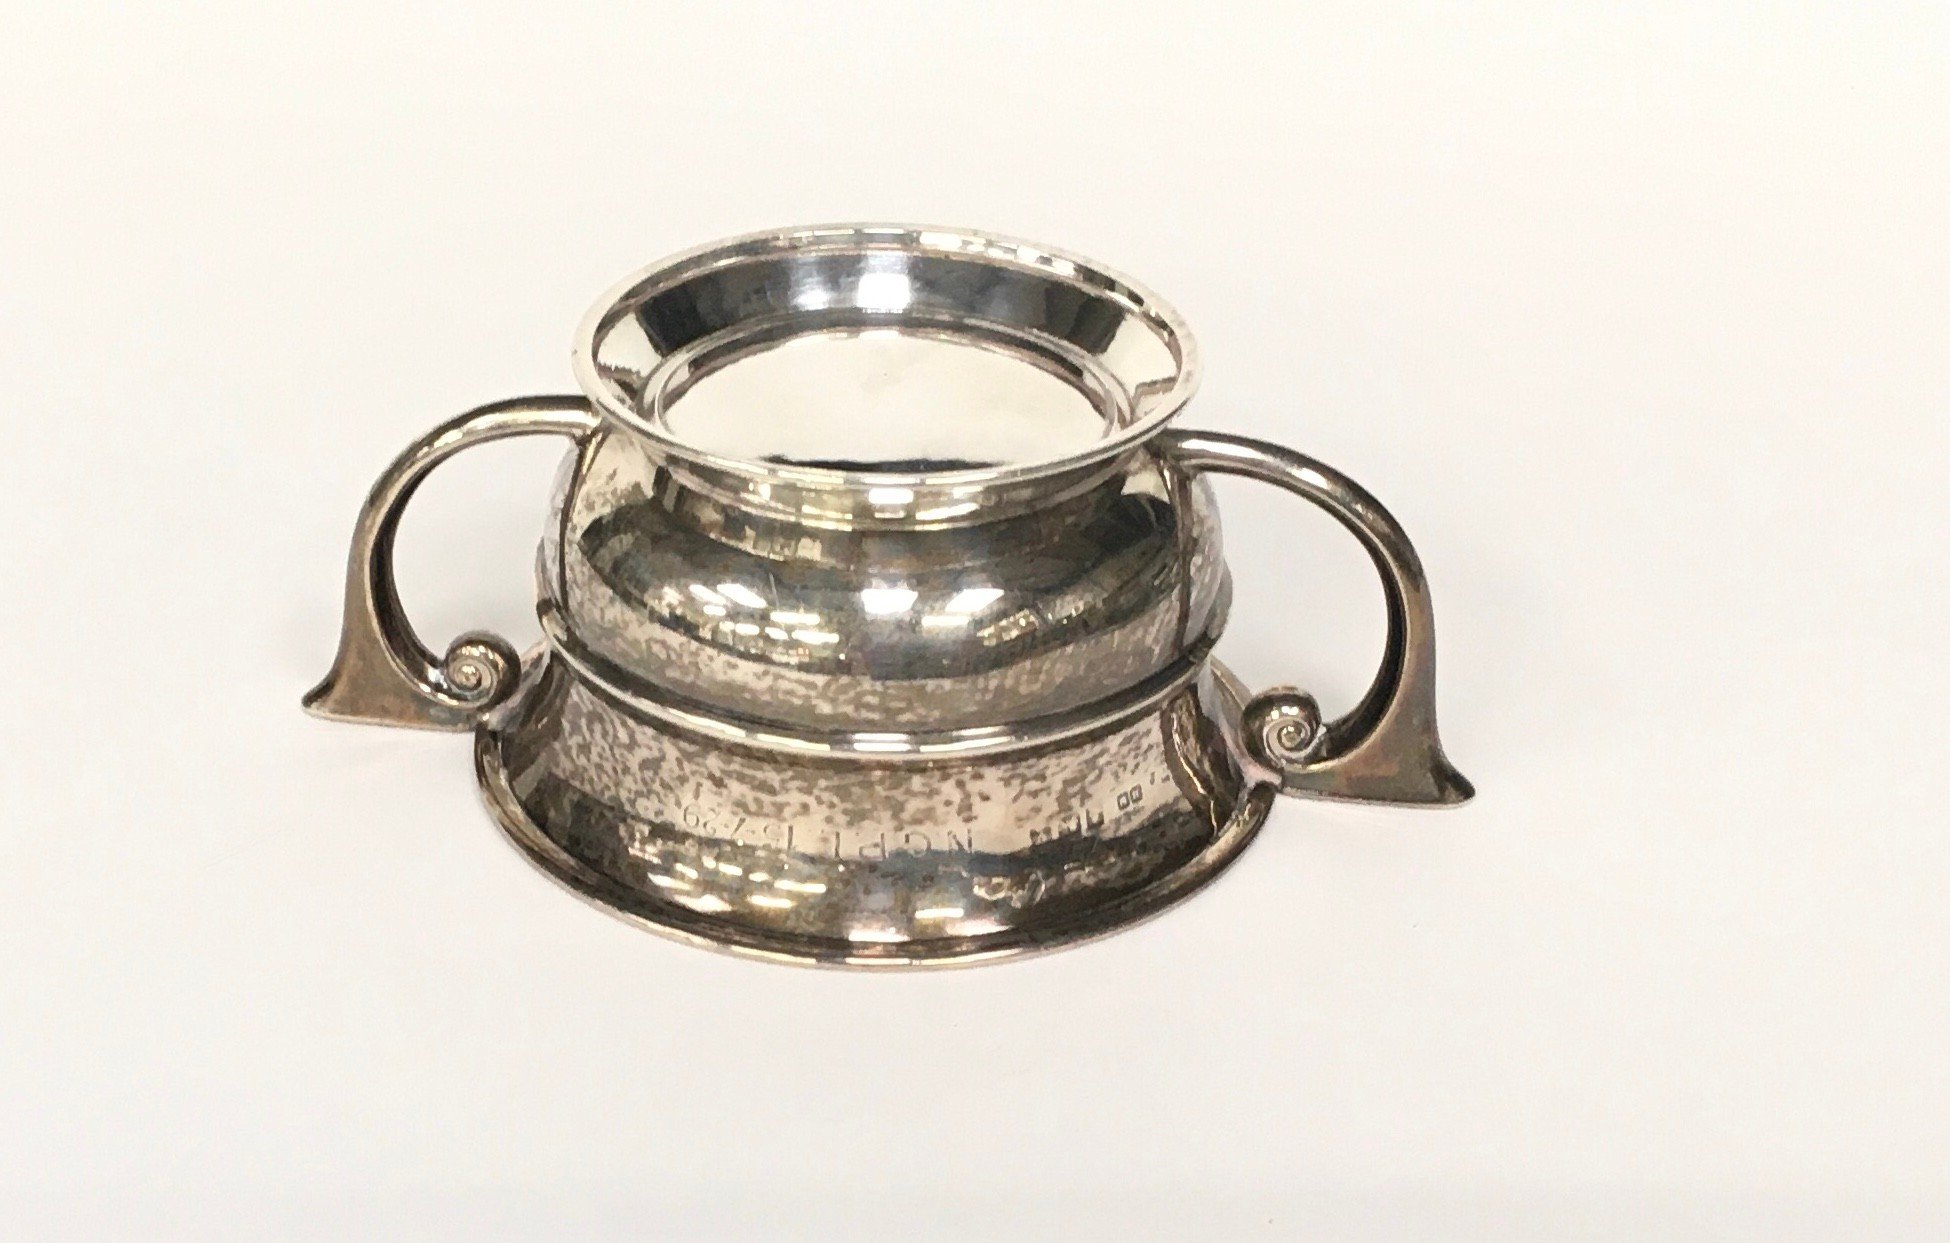 Silver twin handled bowl 100gm - Image 4 of 4